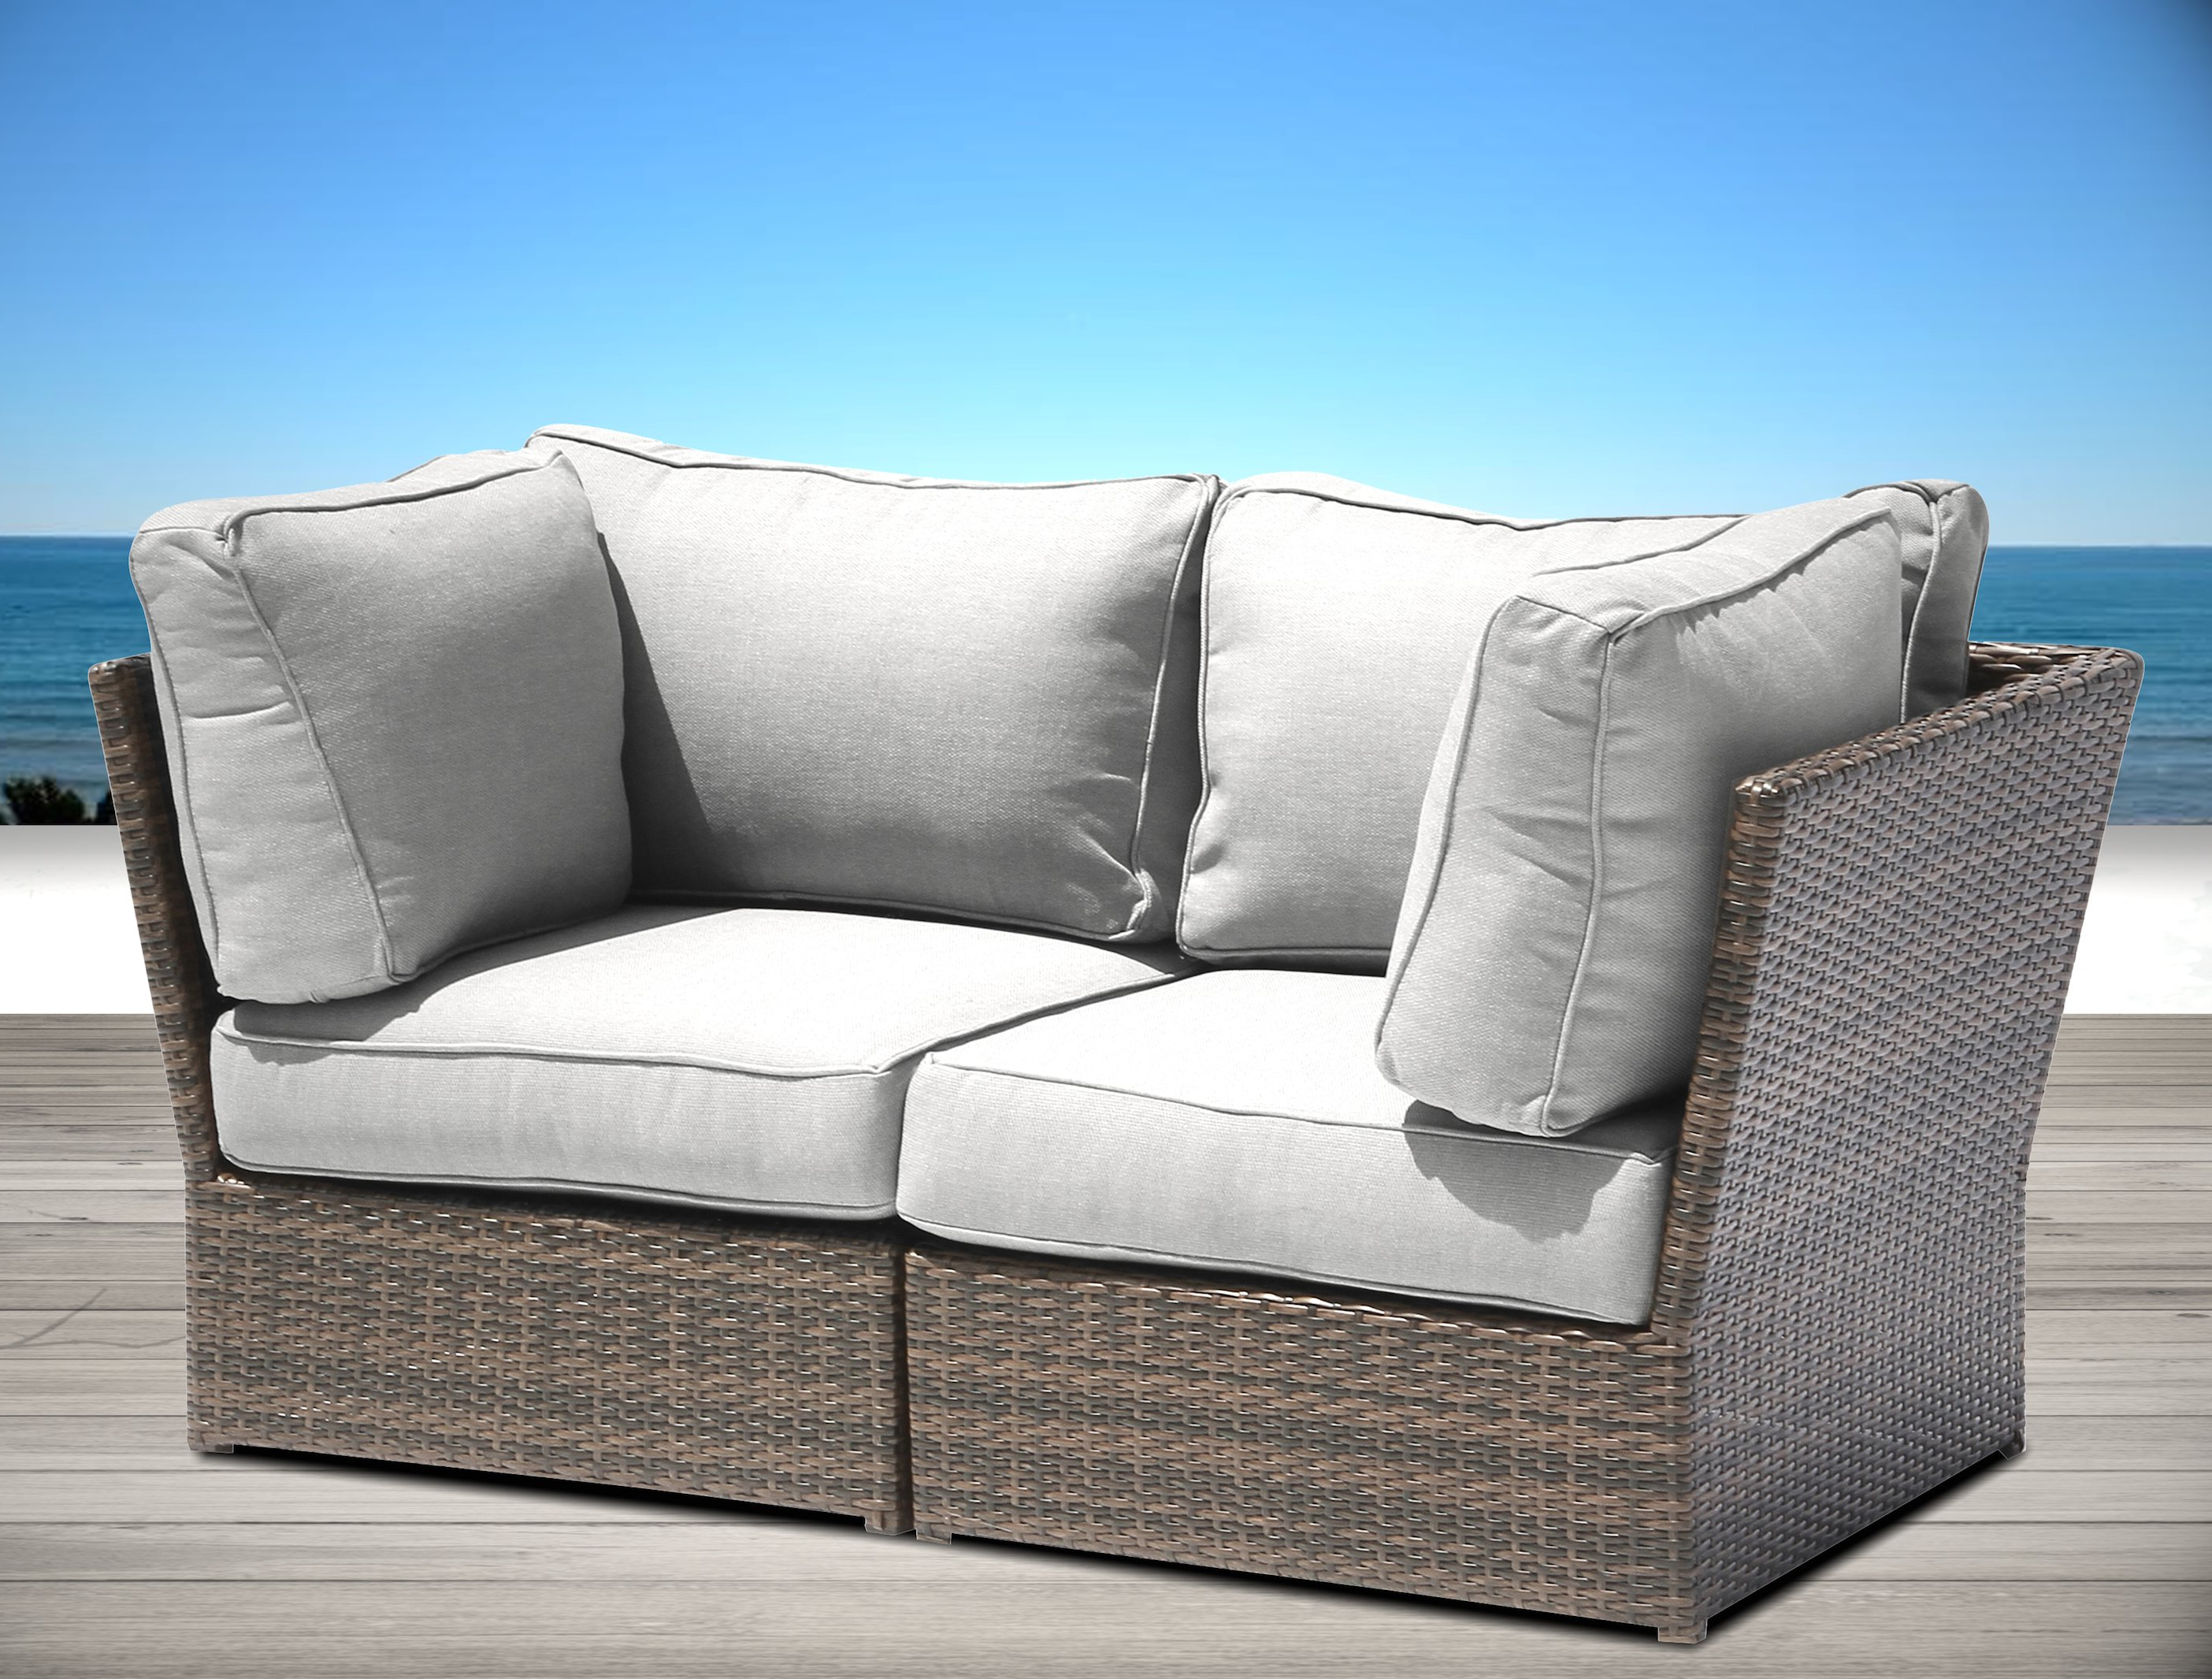 Mendelson Loveseats With Cushion With Regard To Most Recently Released Simmerman Loveseat With Cushions (View 14 of 20)